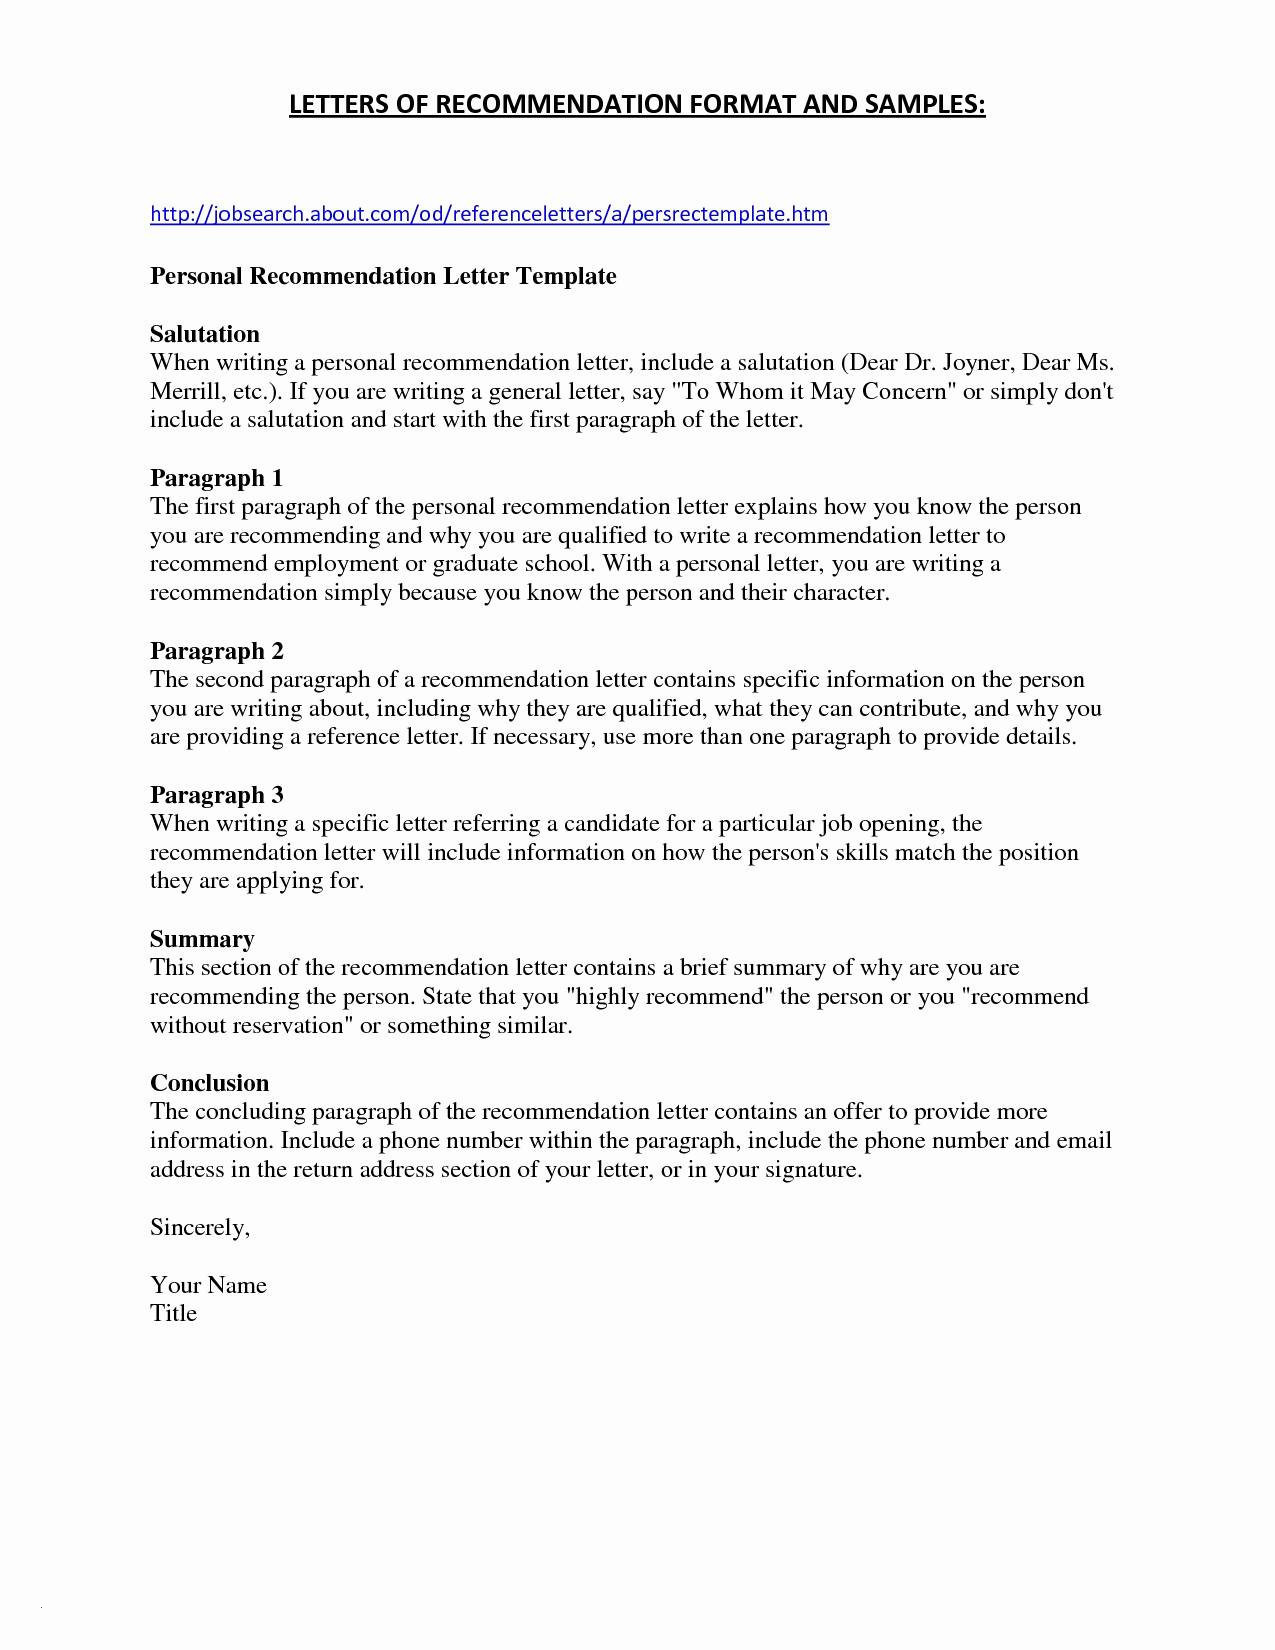 Resume Template for Openoffice - Resume Templates Open Fice Free Fresh Free Resume Template Genial